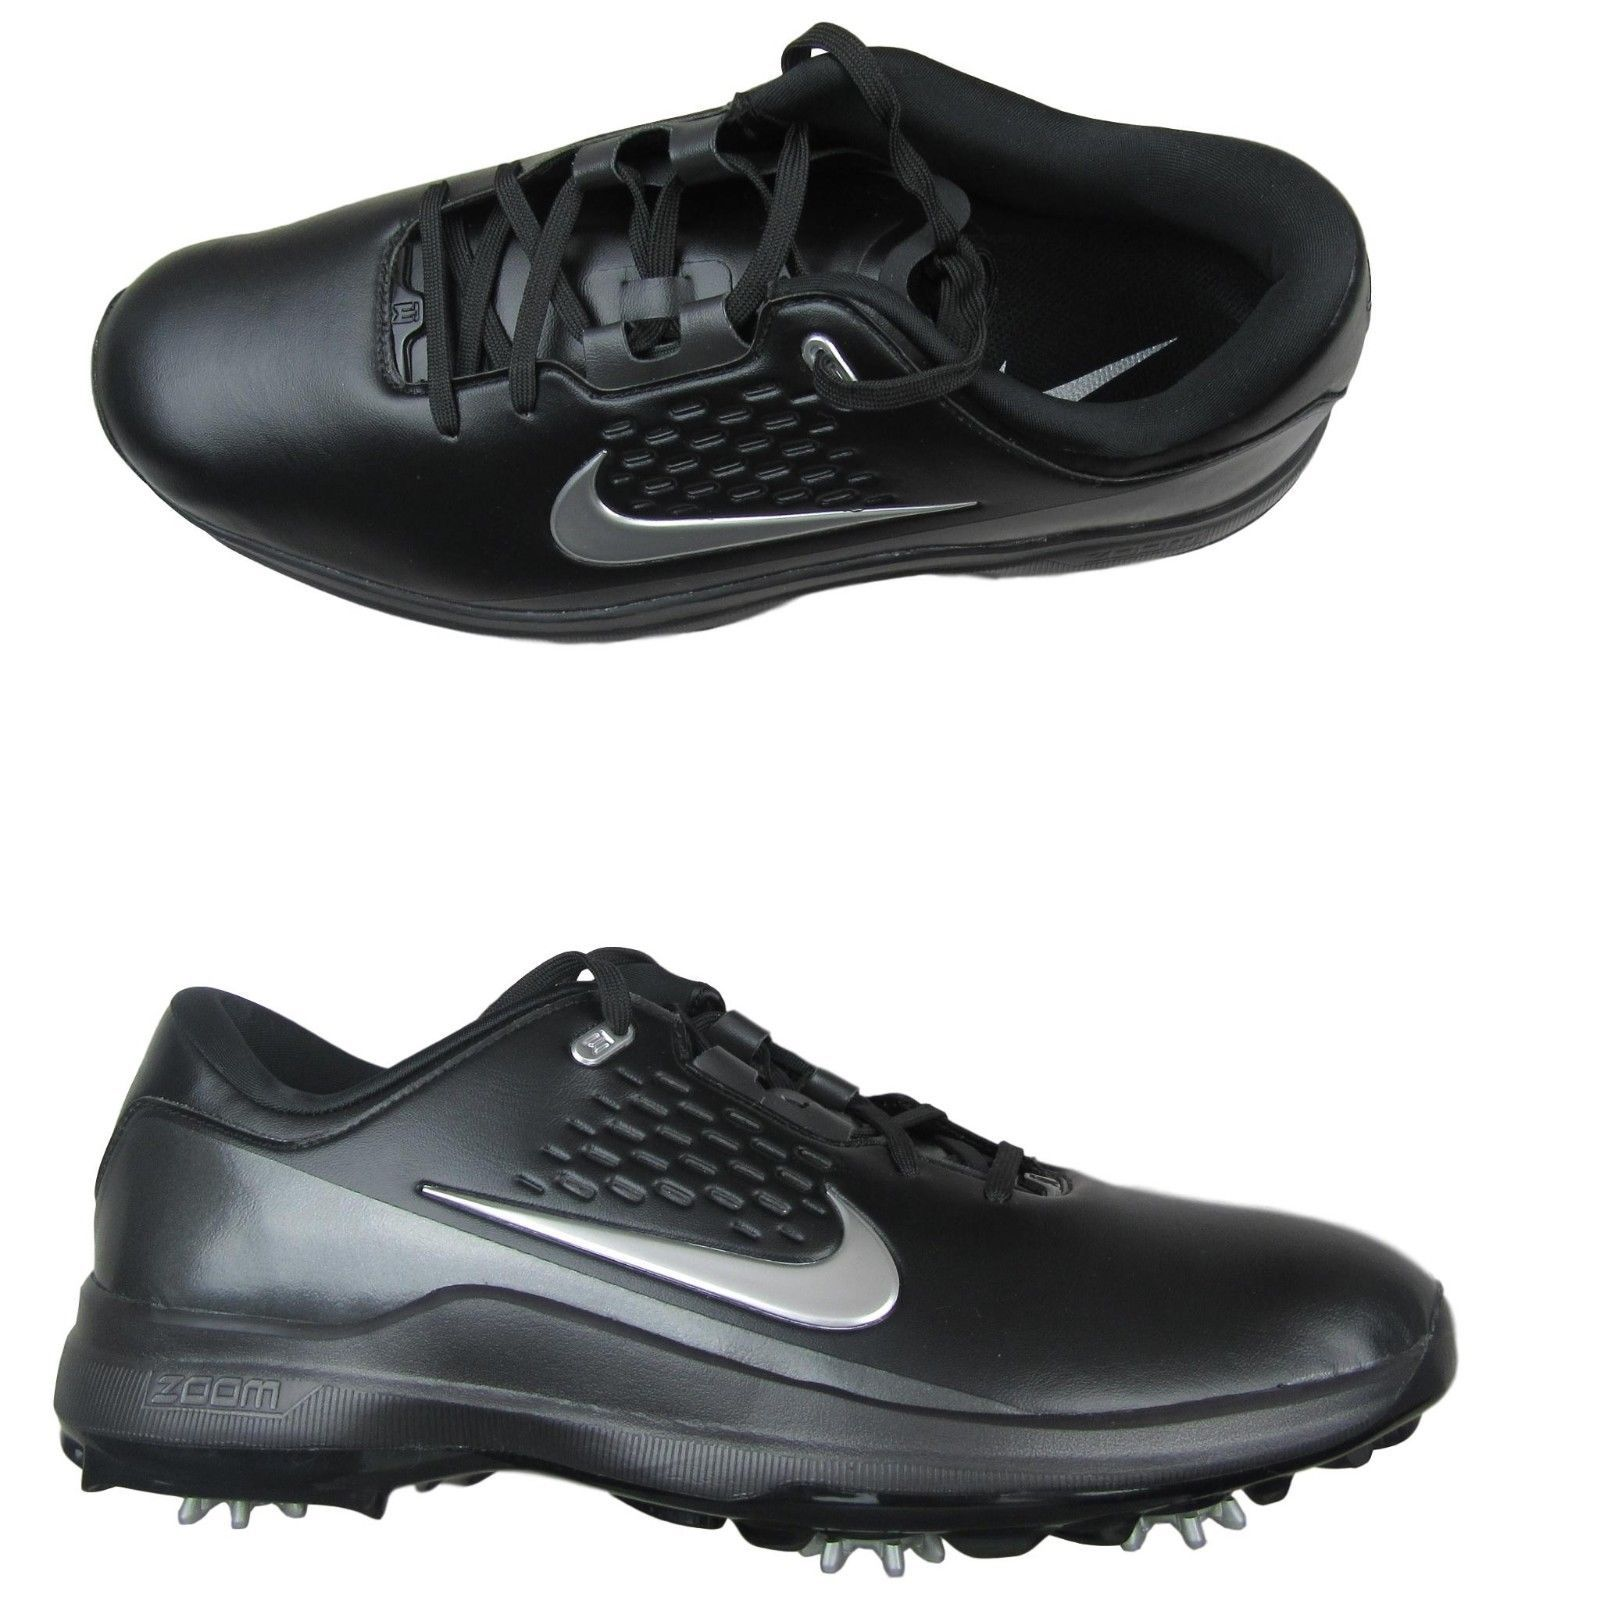 low priced c5b1d 2c7b3 Nike Golf Air Zoom TW71 Tiger Woods Cleats and 50 similar items